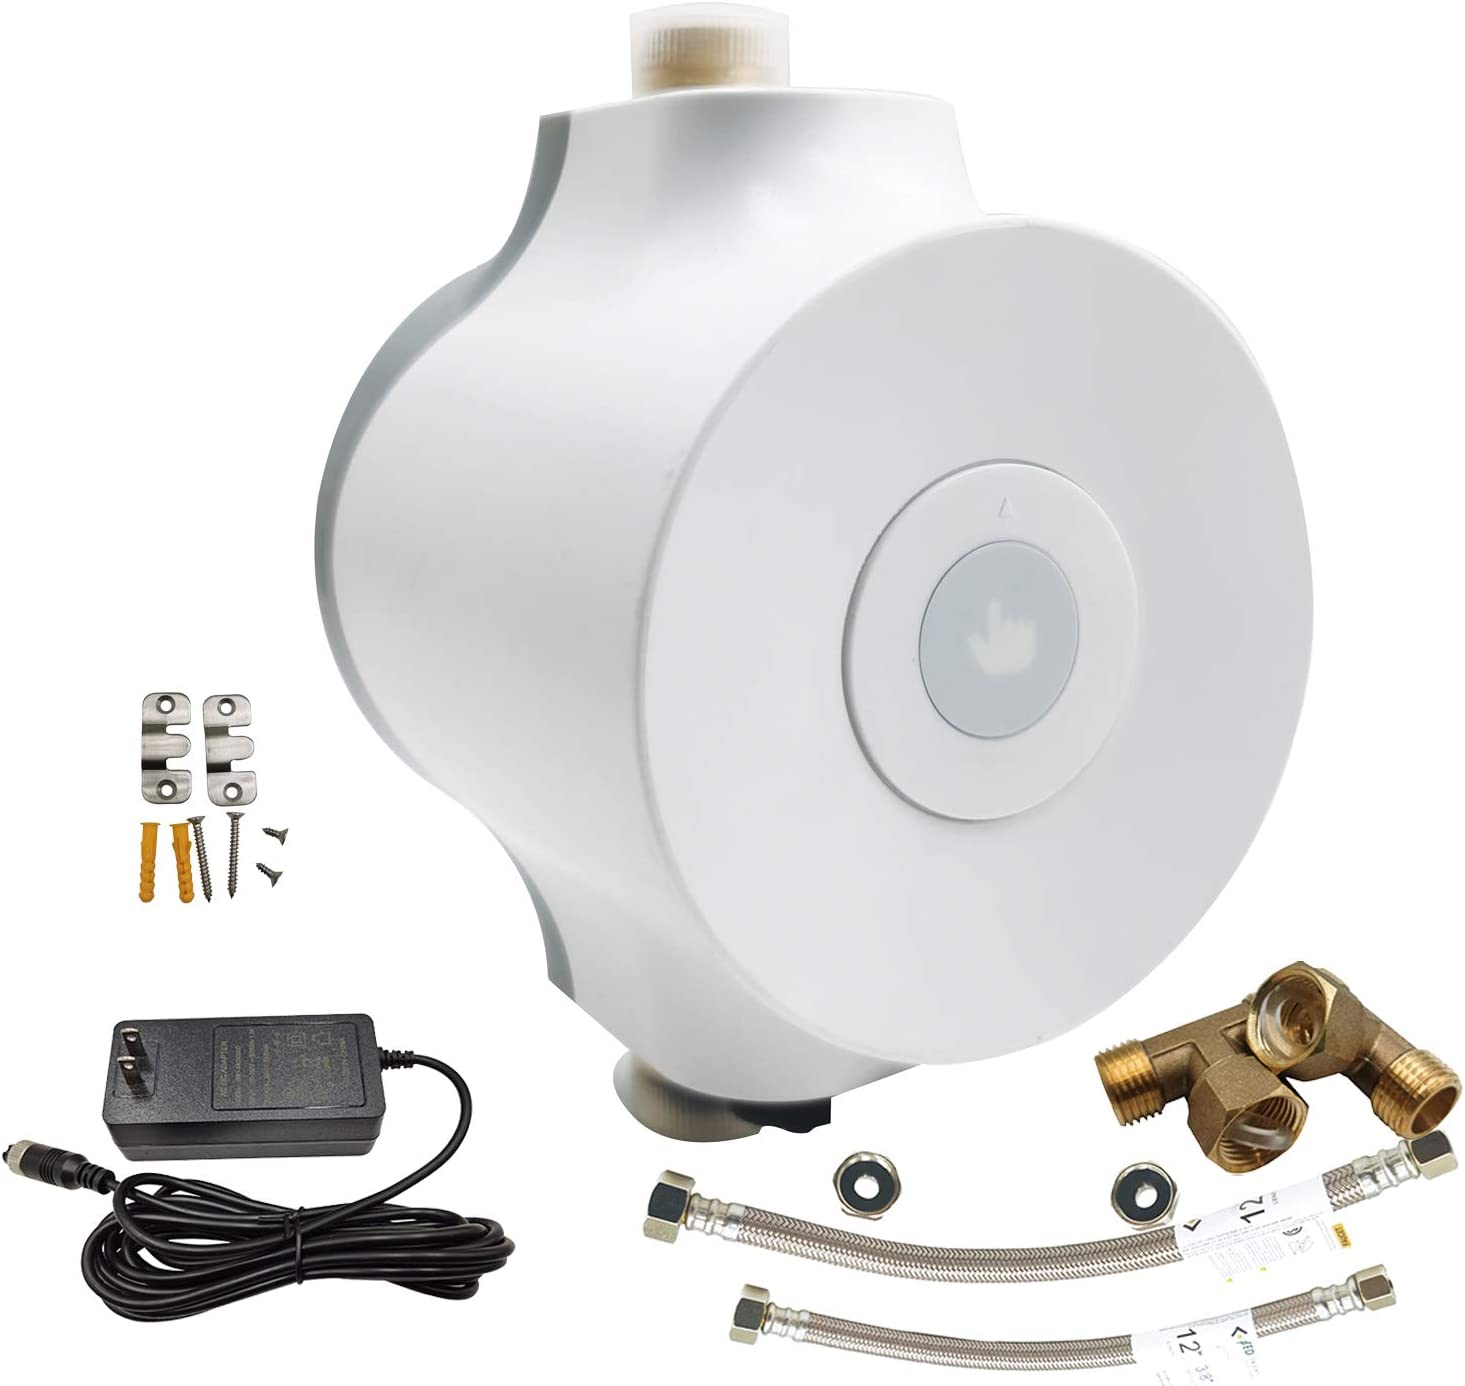 PROZRTED Smart Instant Hot Water Recirculating Pump System with Bulit-in Thermostat HBS24-12